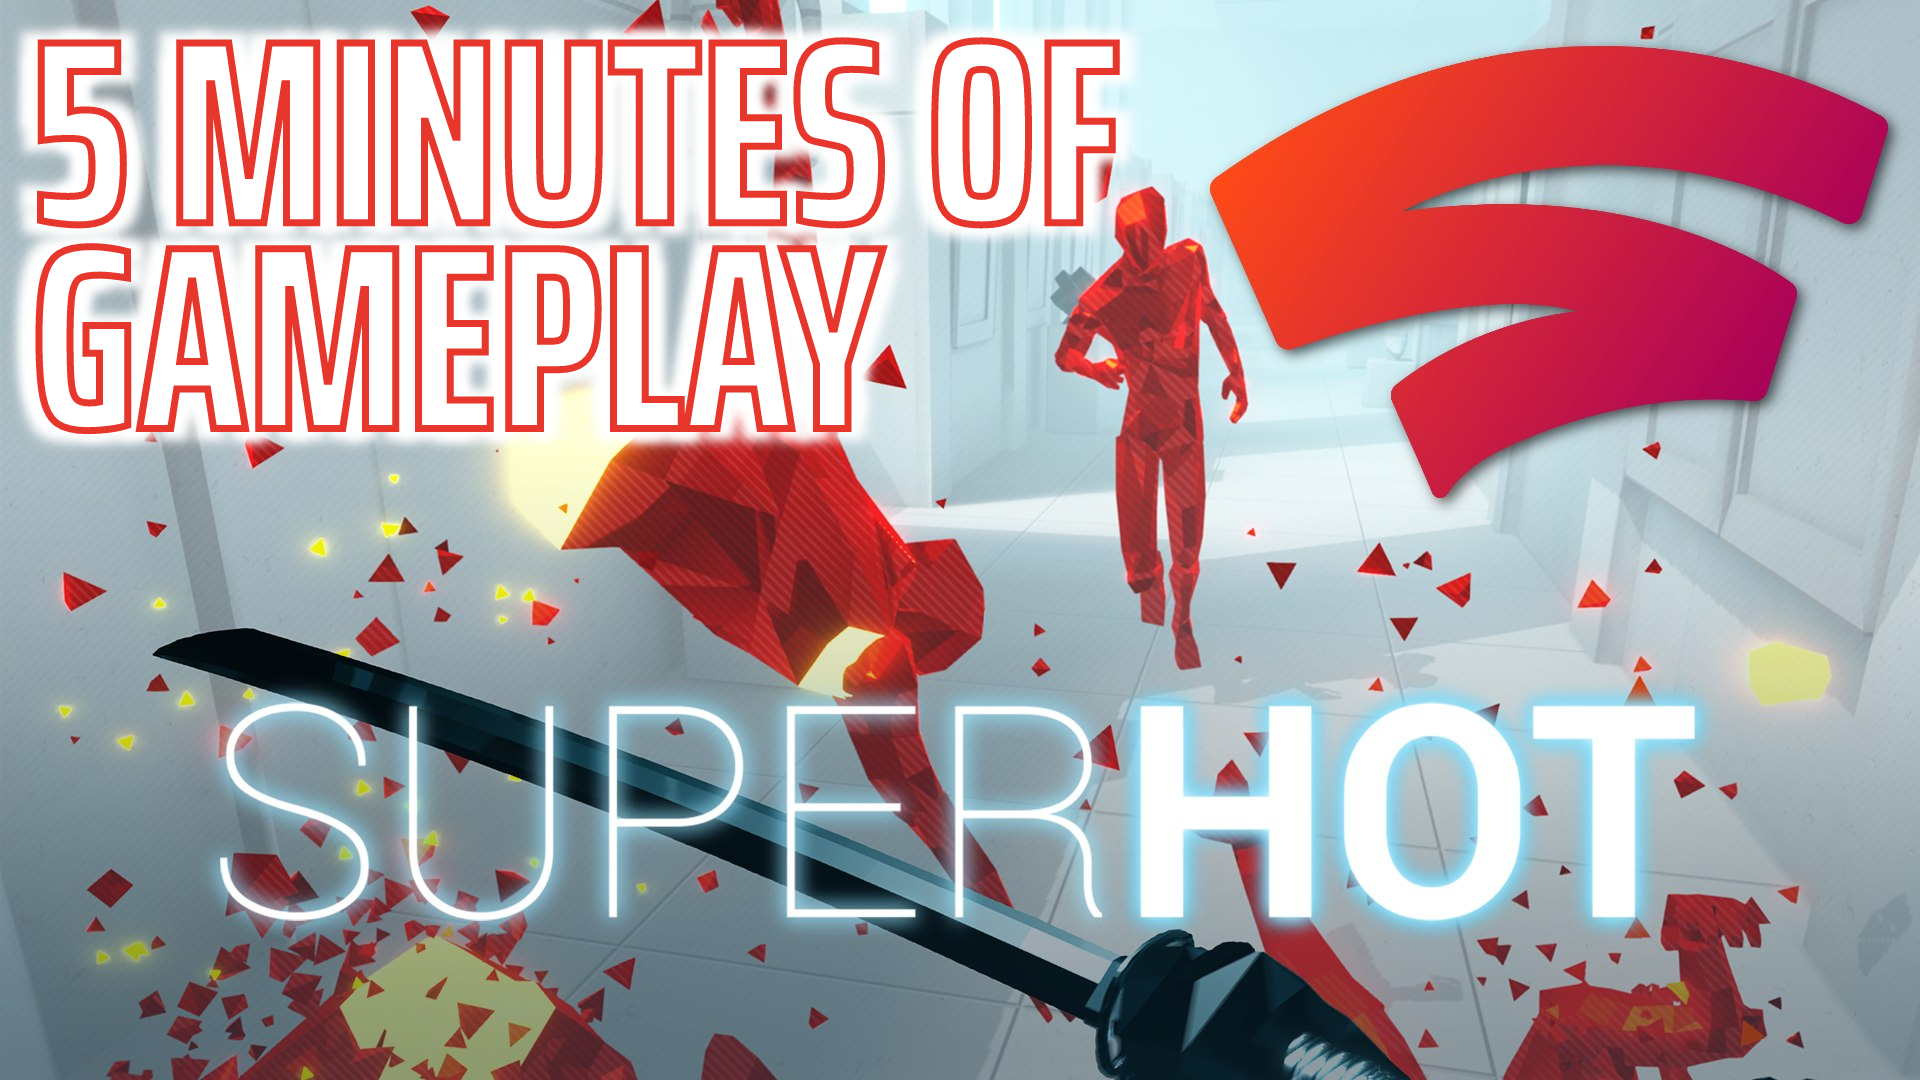 Superhot: Stadia First Impressions Gameplay